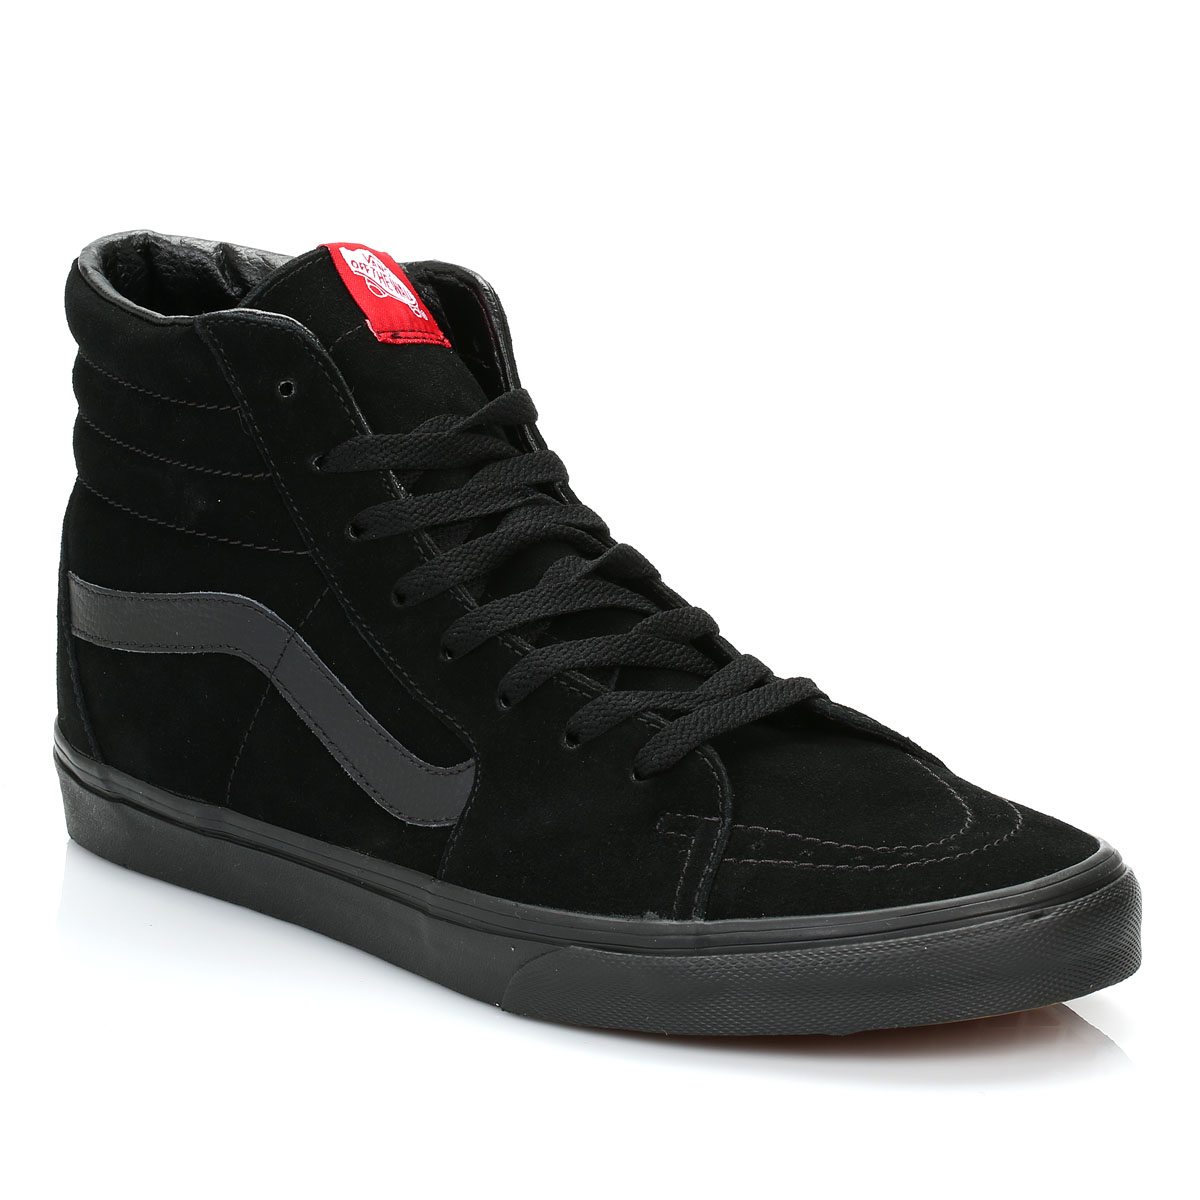 335984df0b6185 Details about Vans Men High Tops Black SK8 Hi Suede Trainers LaceUp Sport  Shoes Casual VD5IBKA